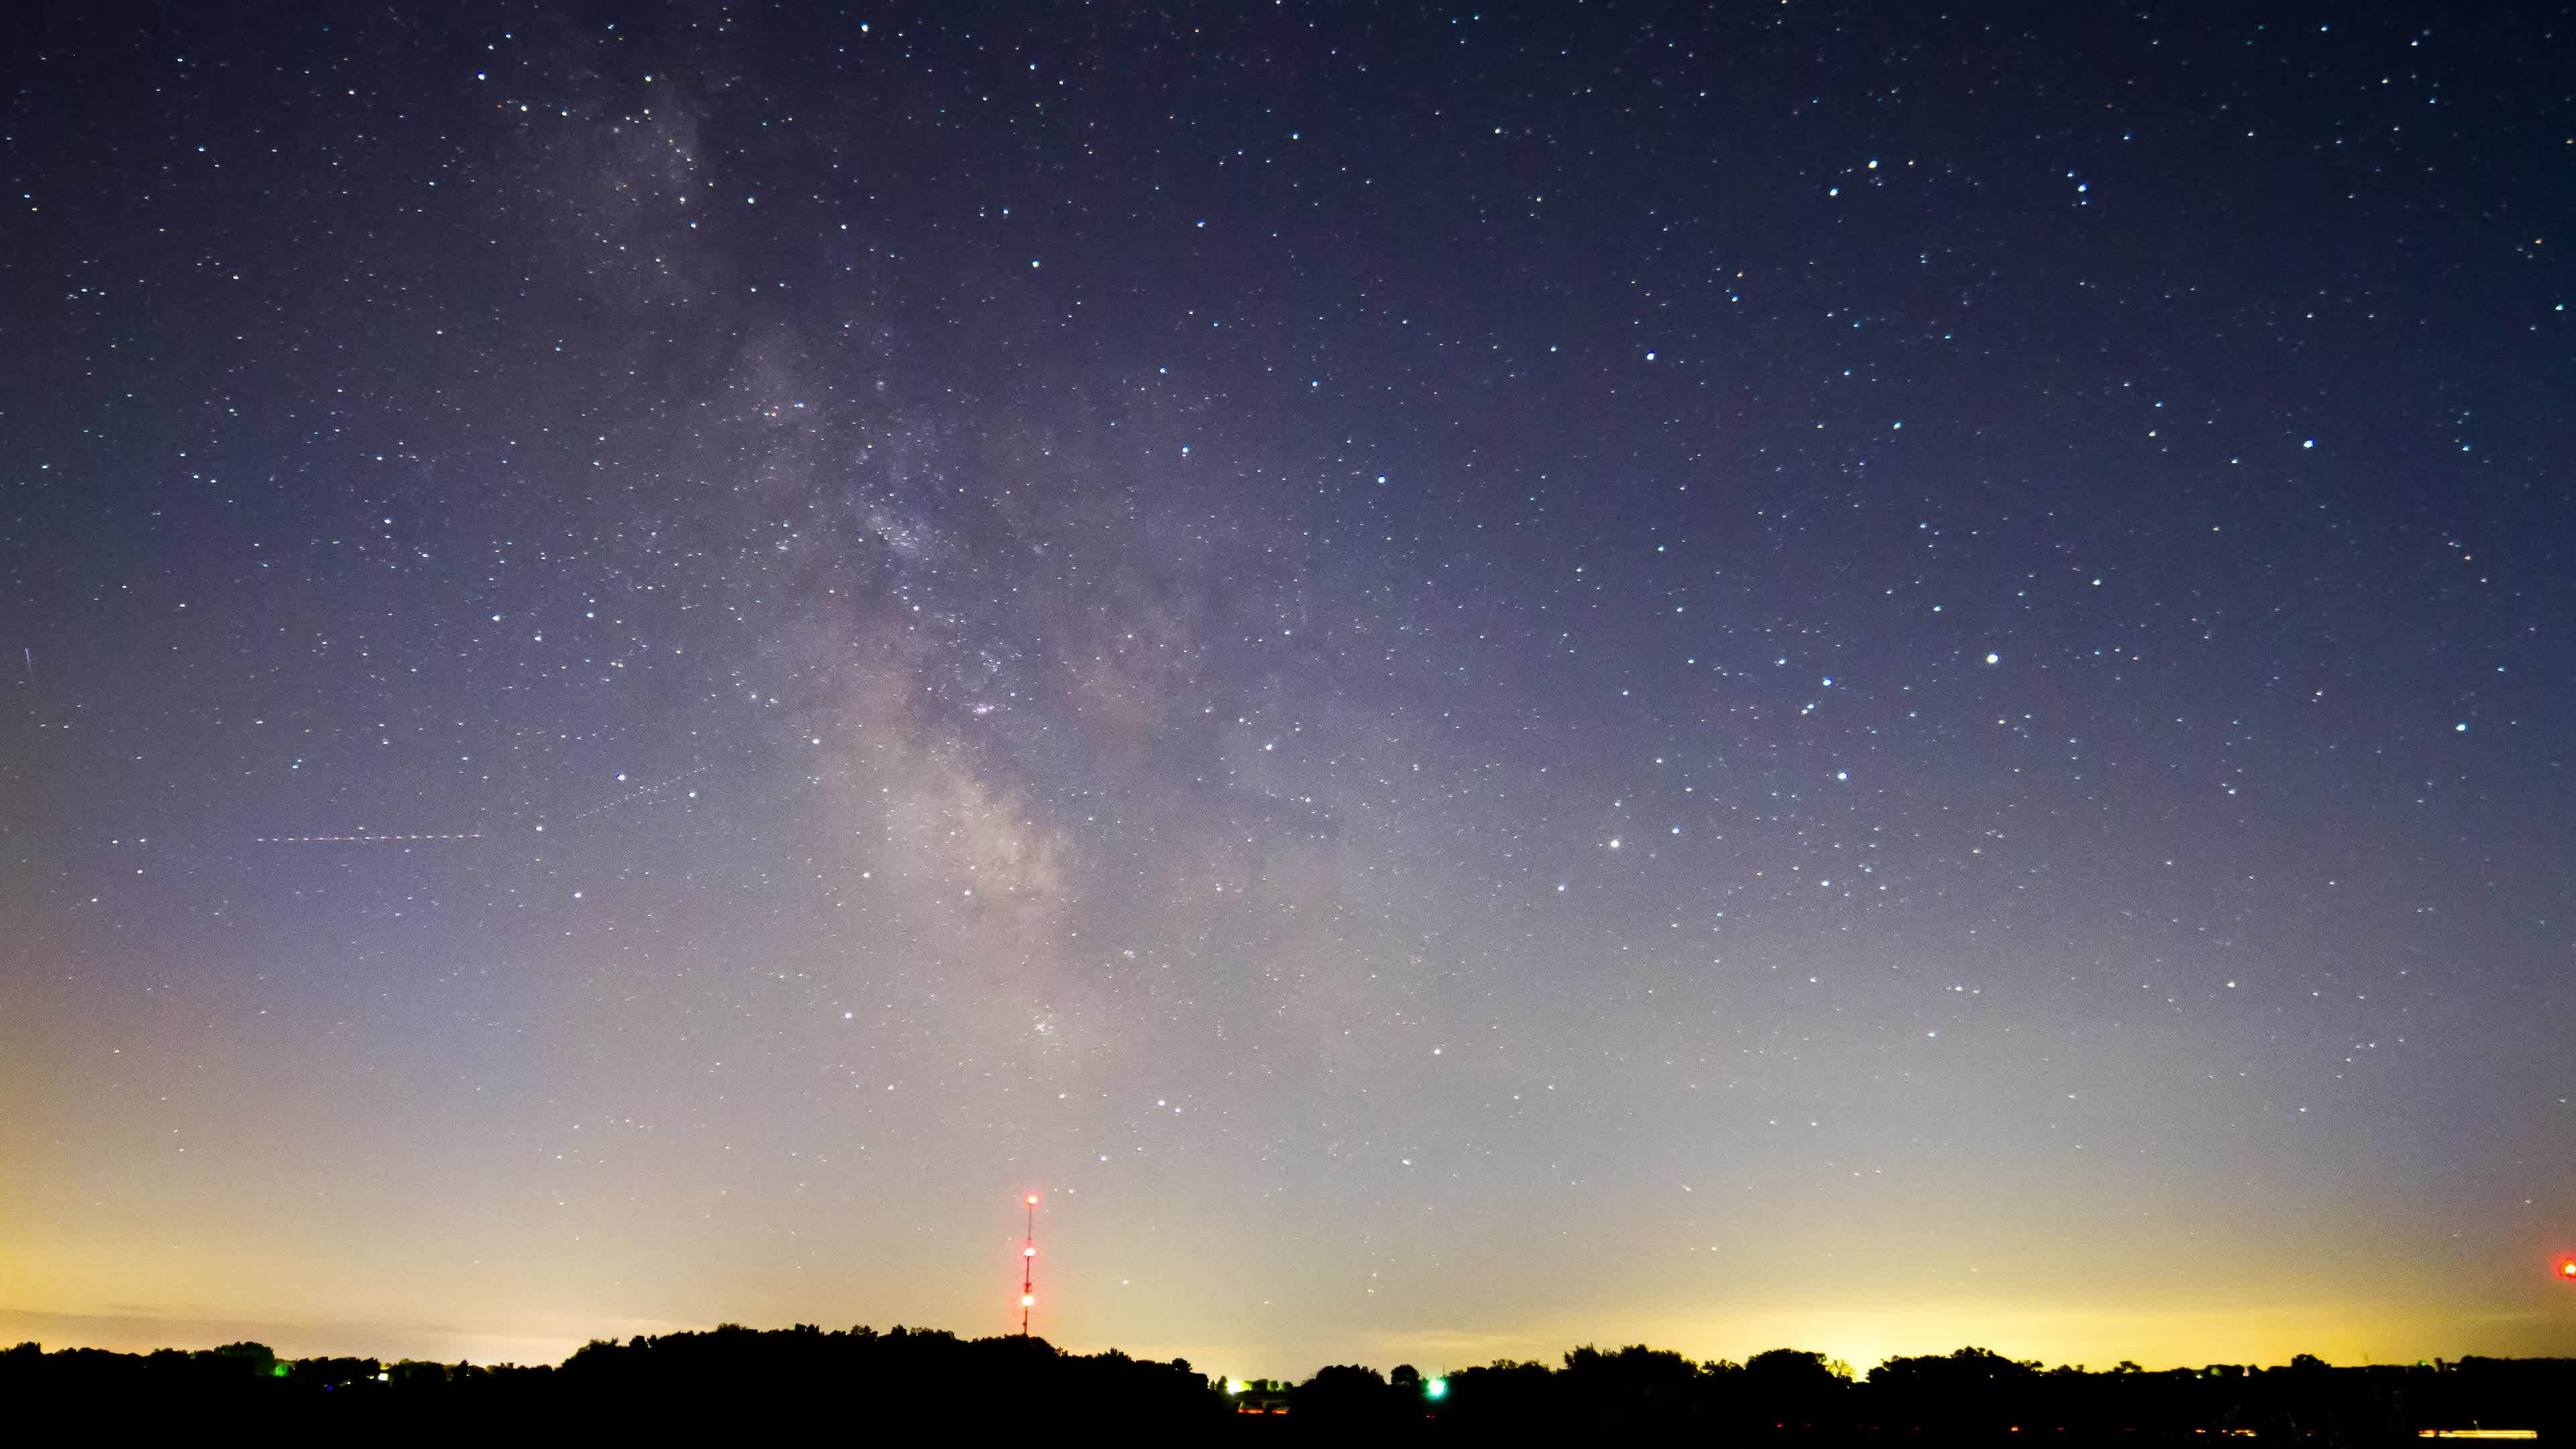 Astrophotography, MilkyWay, Timelapse, Milky Way, it's the earth that's moving. GIFs